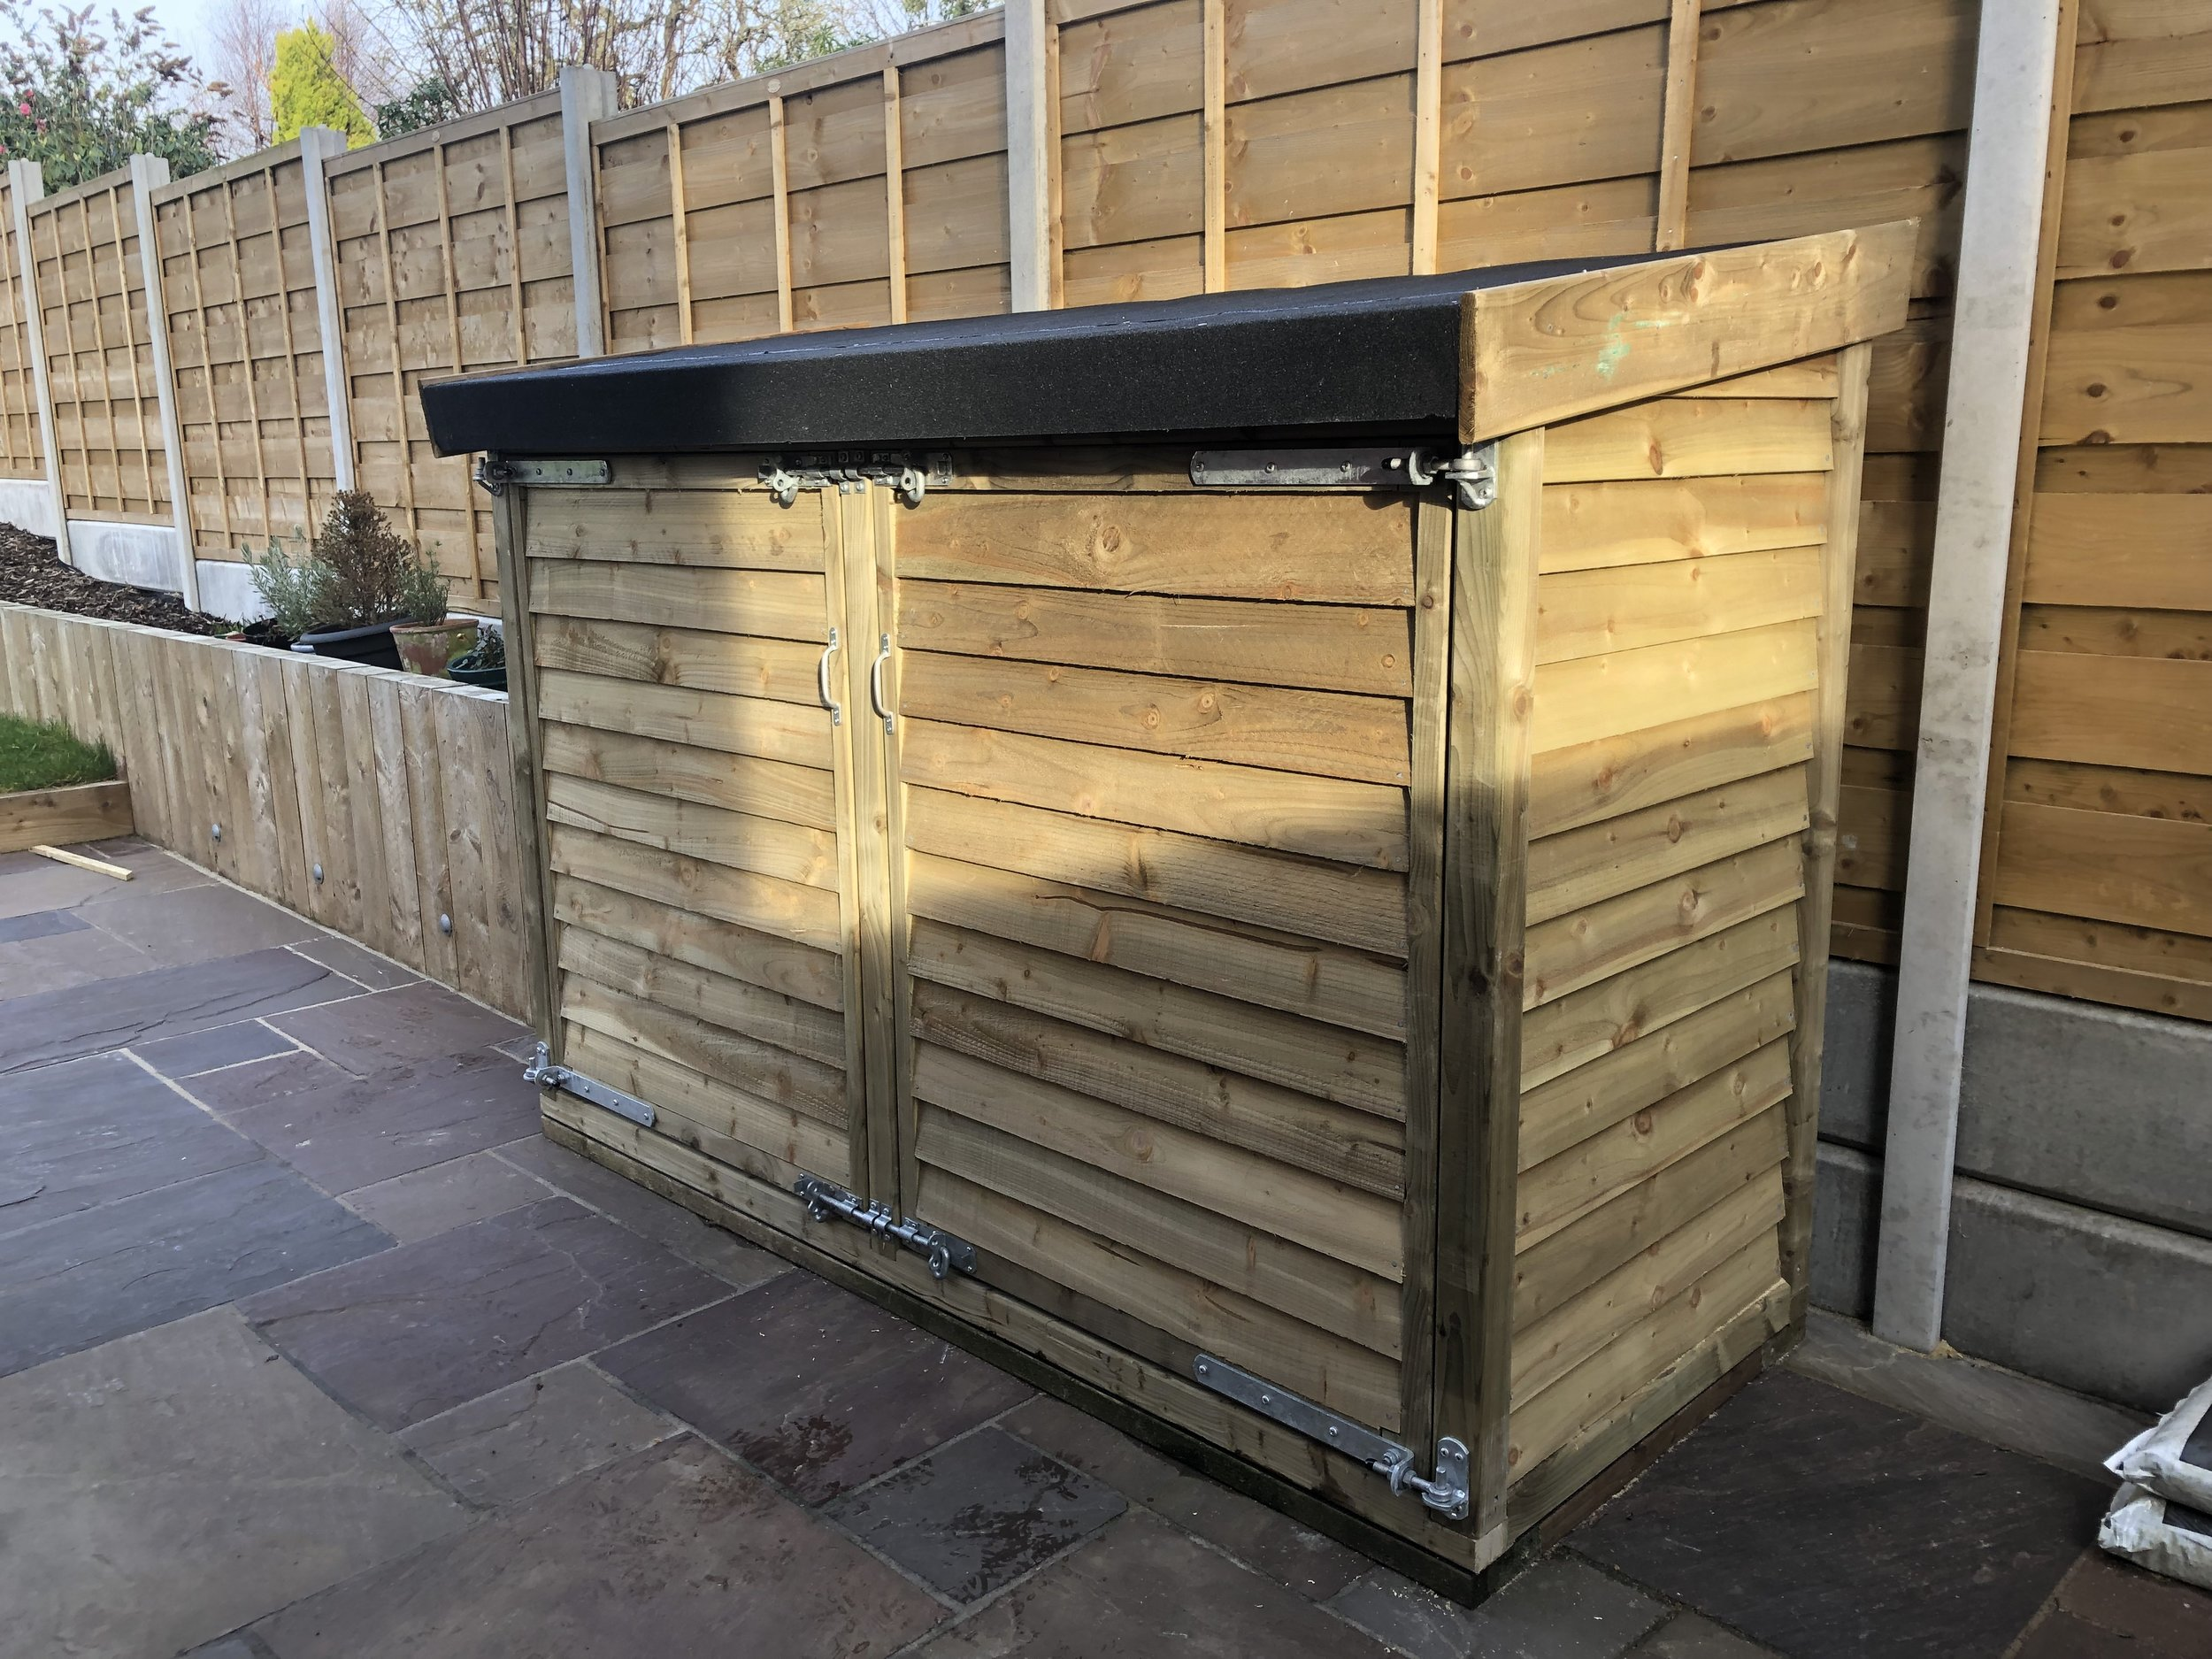 Storage shed built by Ian Corrie using our featheredge boards and sawn timber.